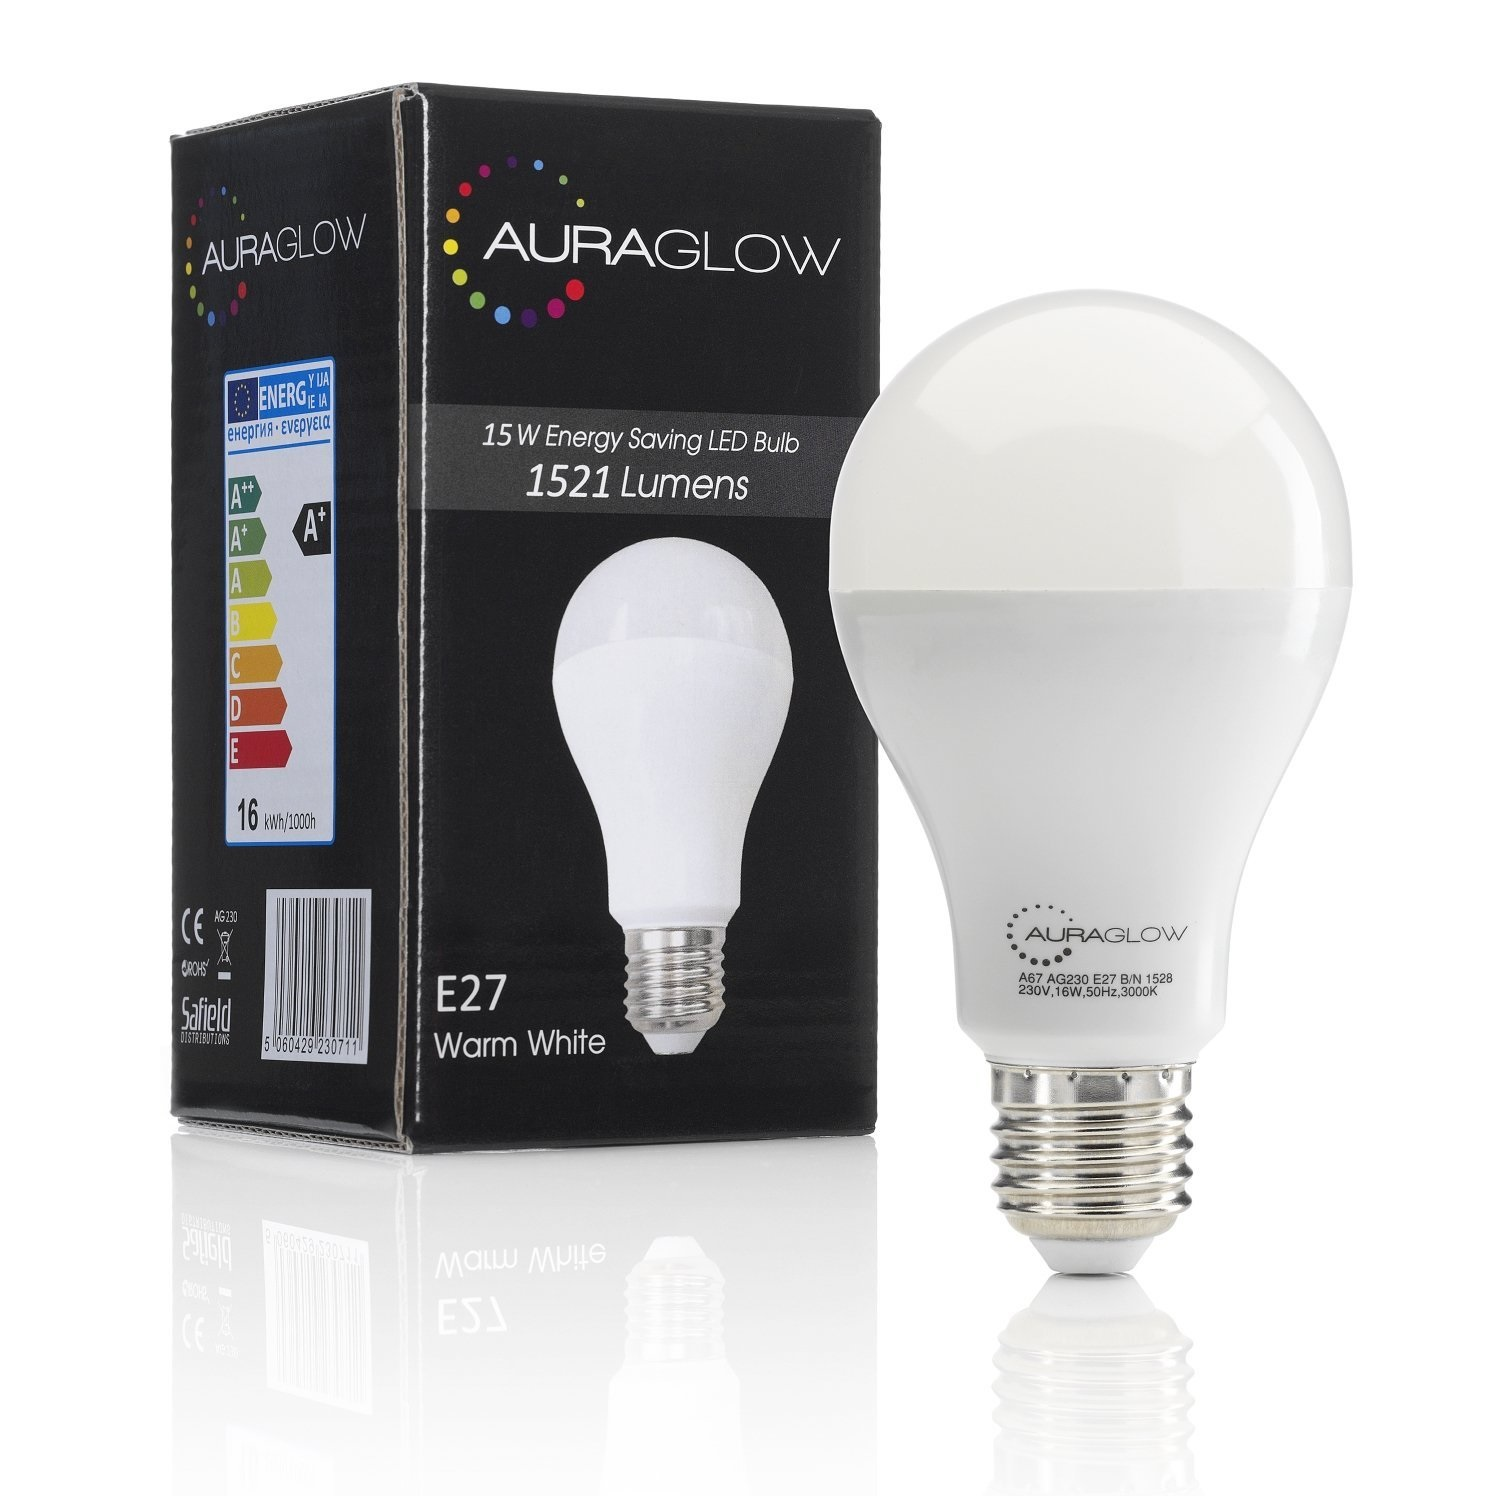 auraglow 15w led e27 cool white 100w eqv auraglow led lighting. Black Bedroom Furniture Sets. Home Design Ideas